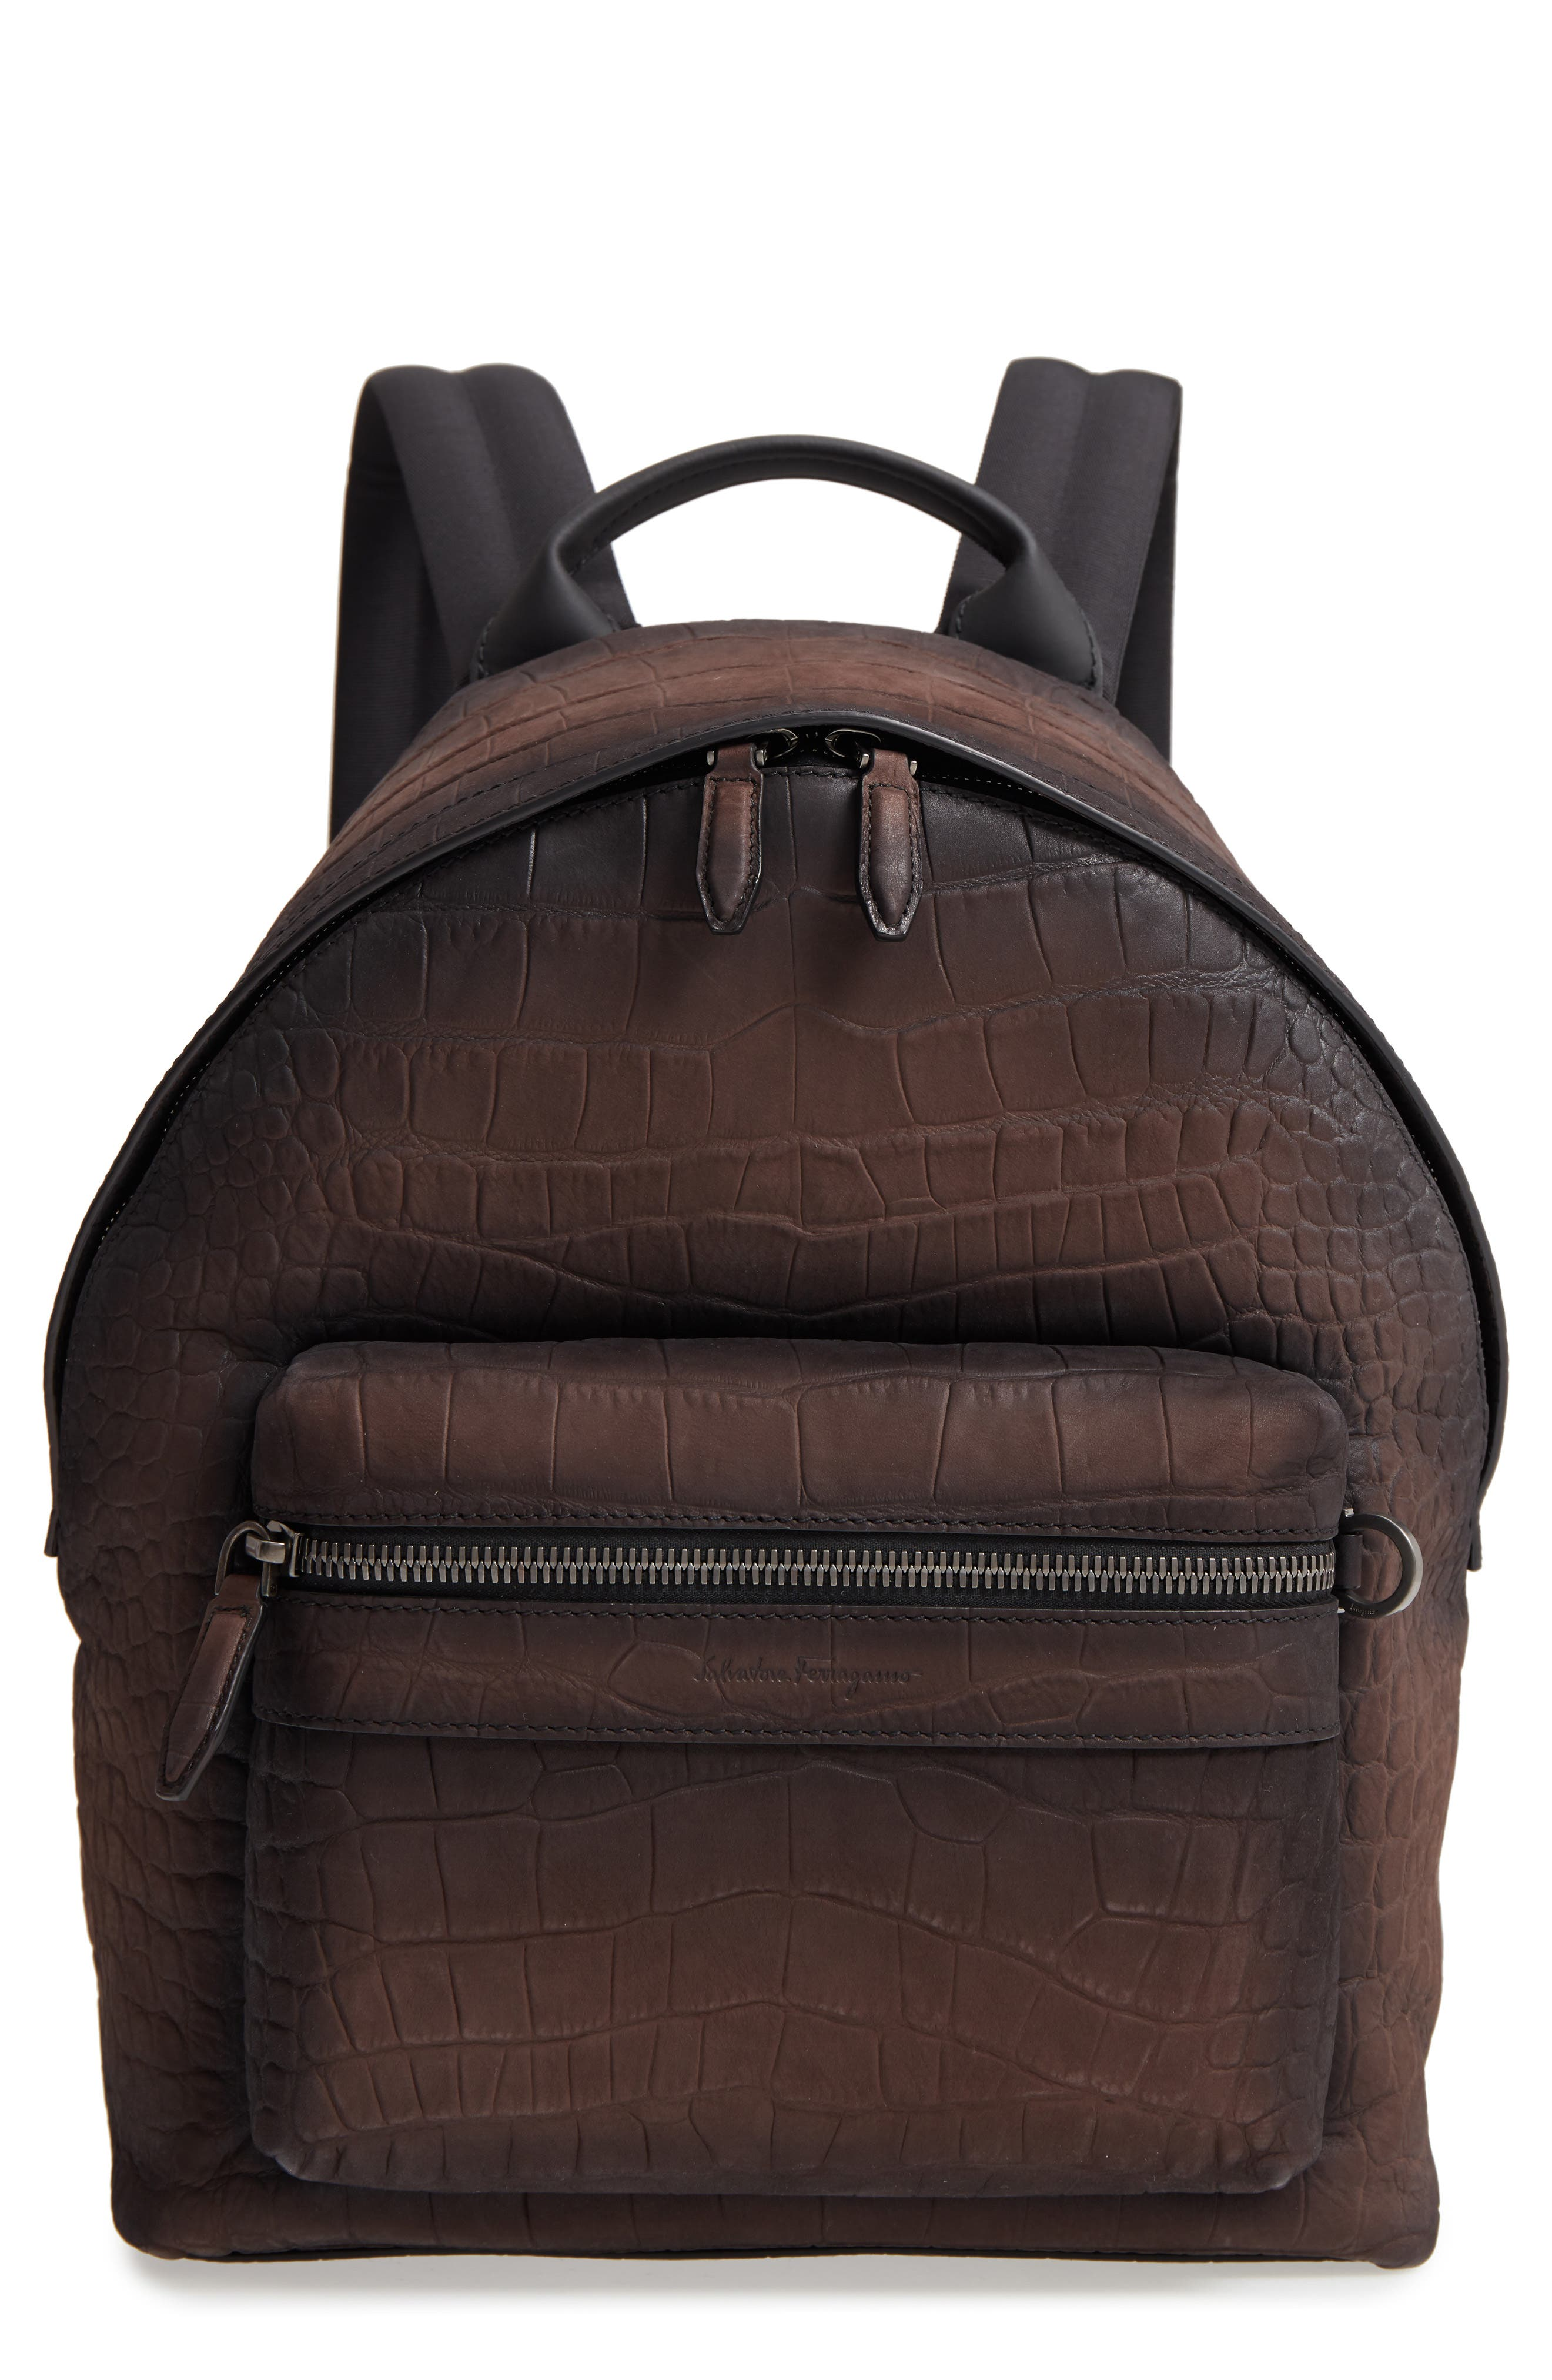 Firenze Leather Backpack,                             Main thumbnail 1, color,                             MORO